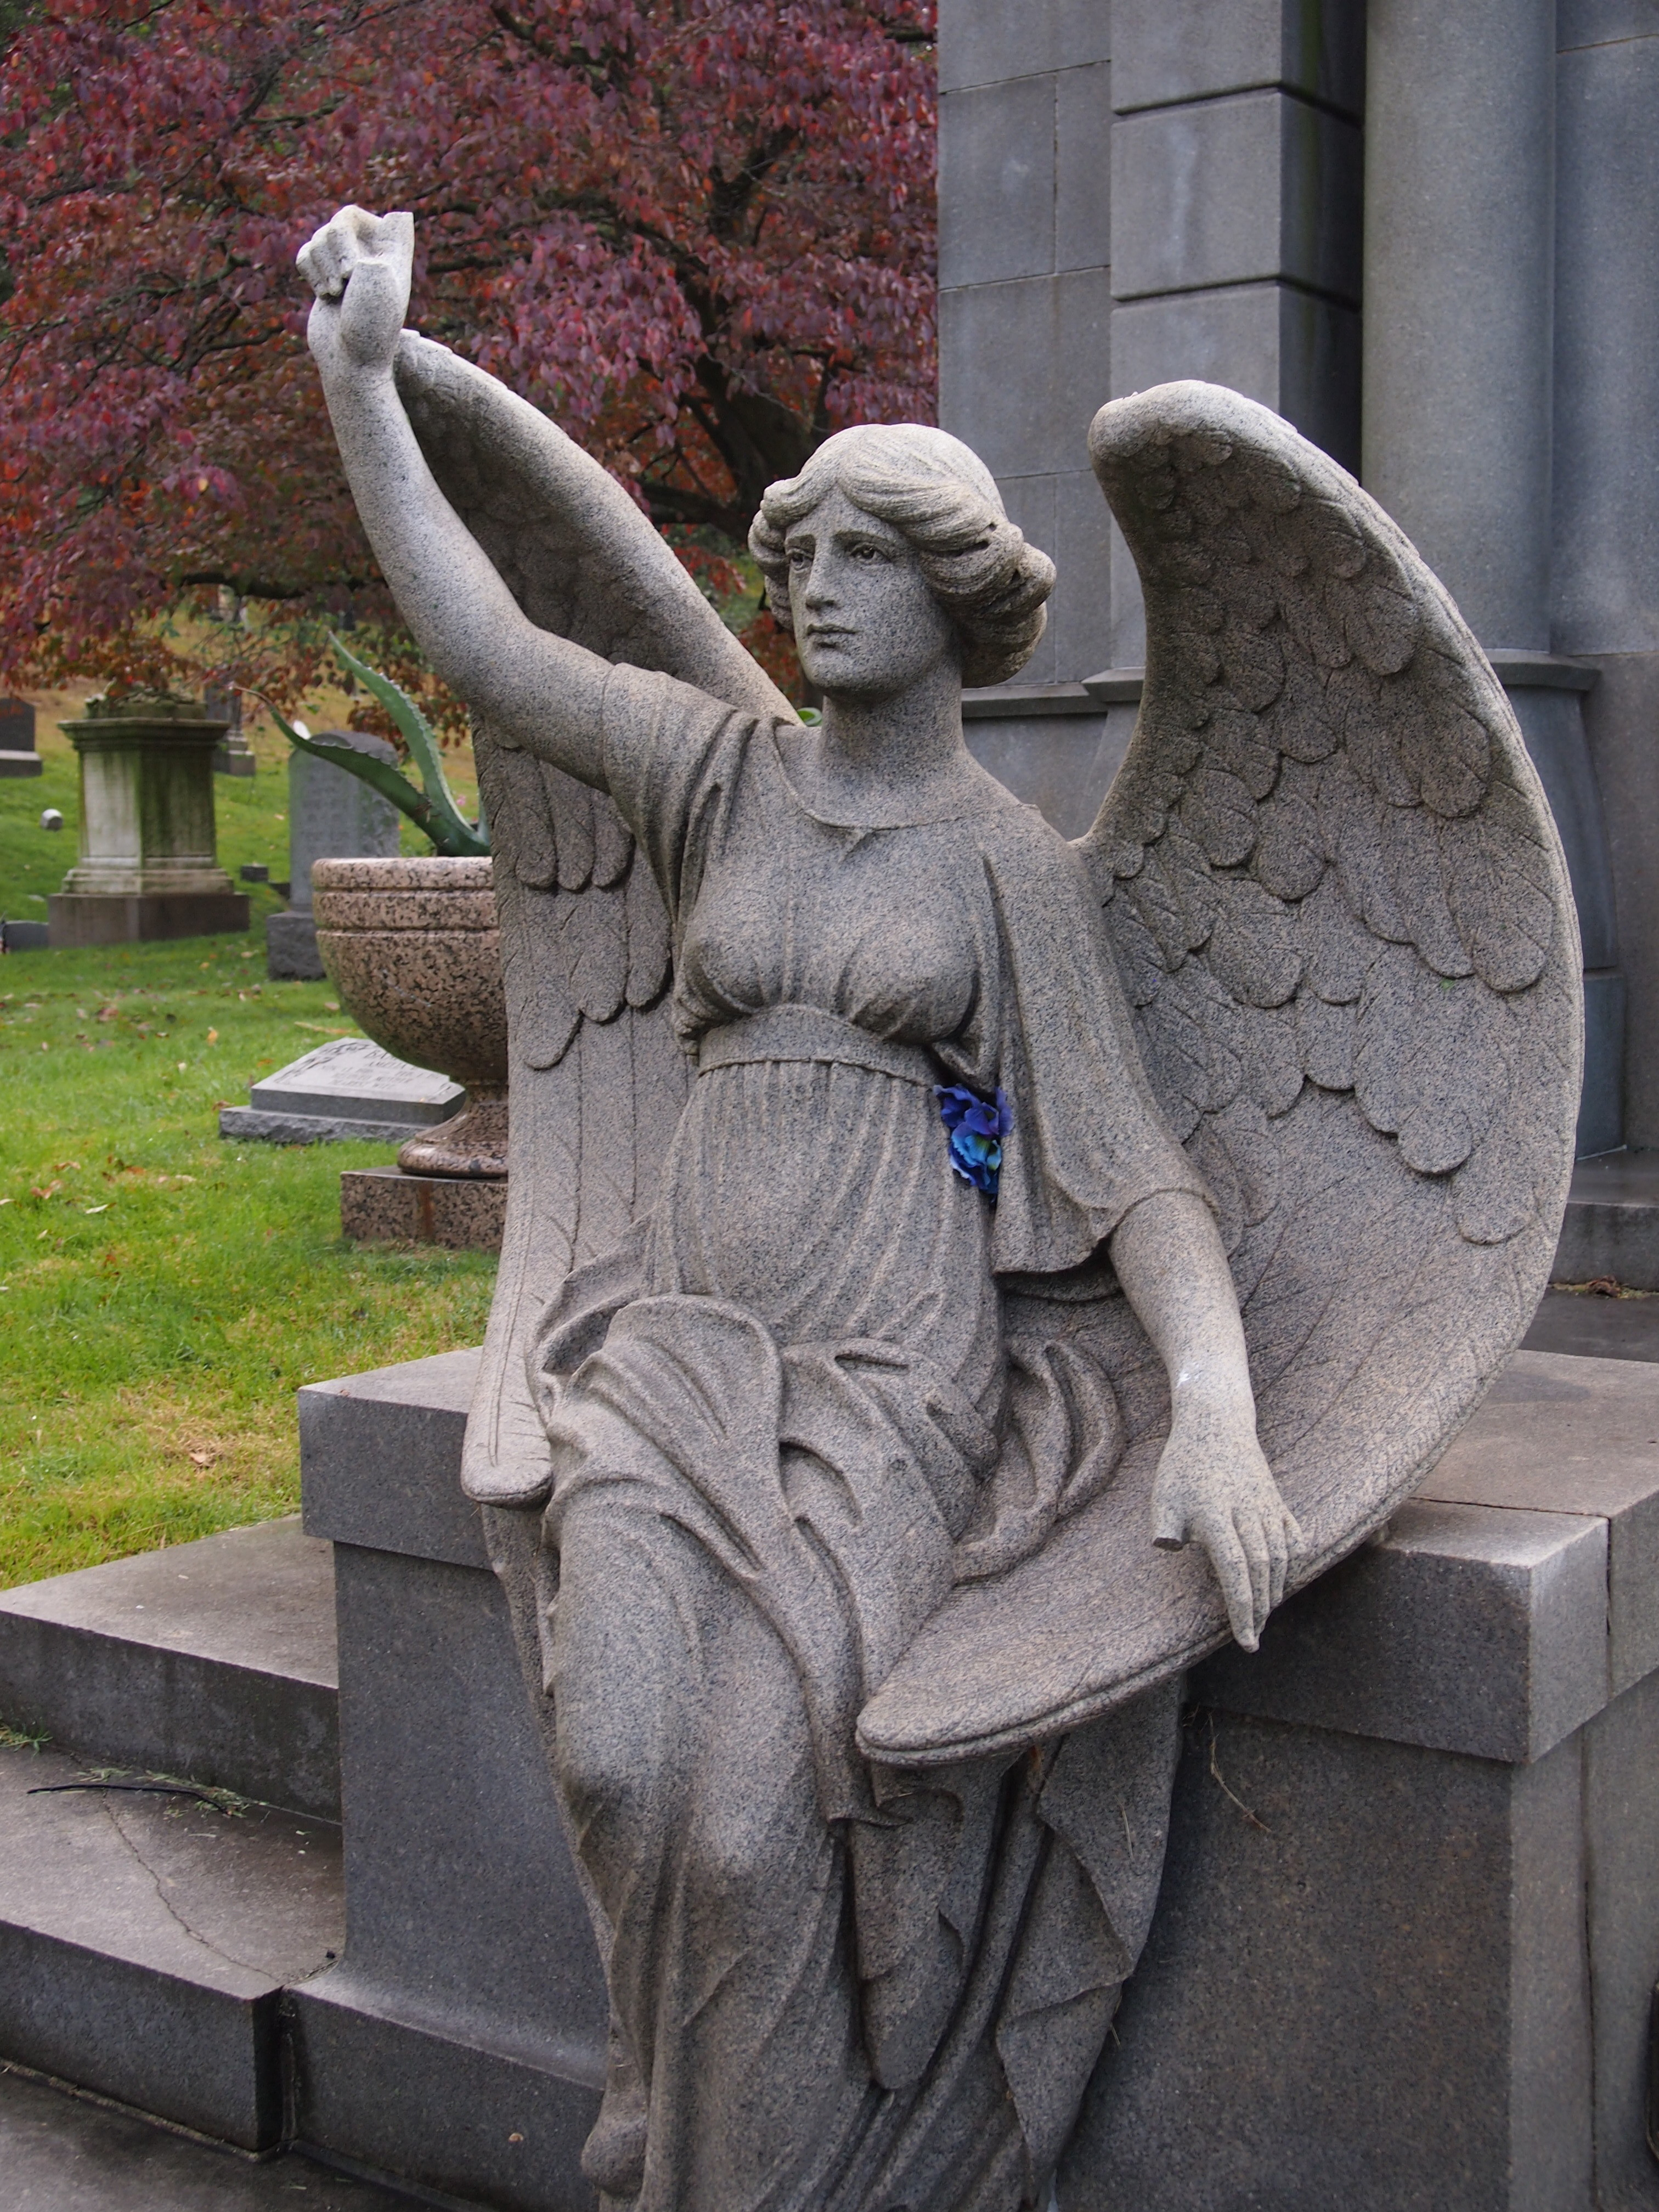 Green-Wood Cemetery, Oct 14, 2014